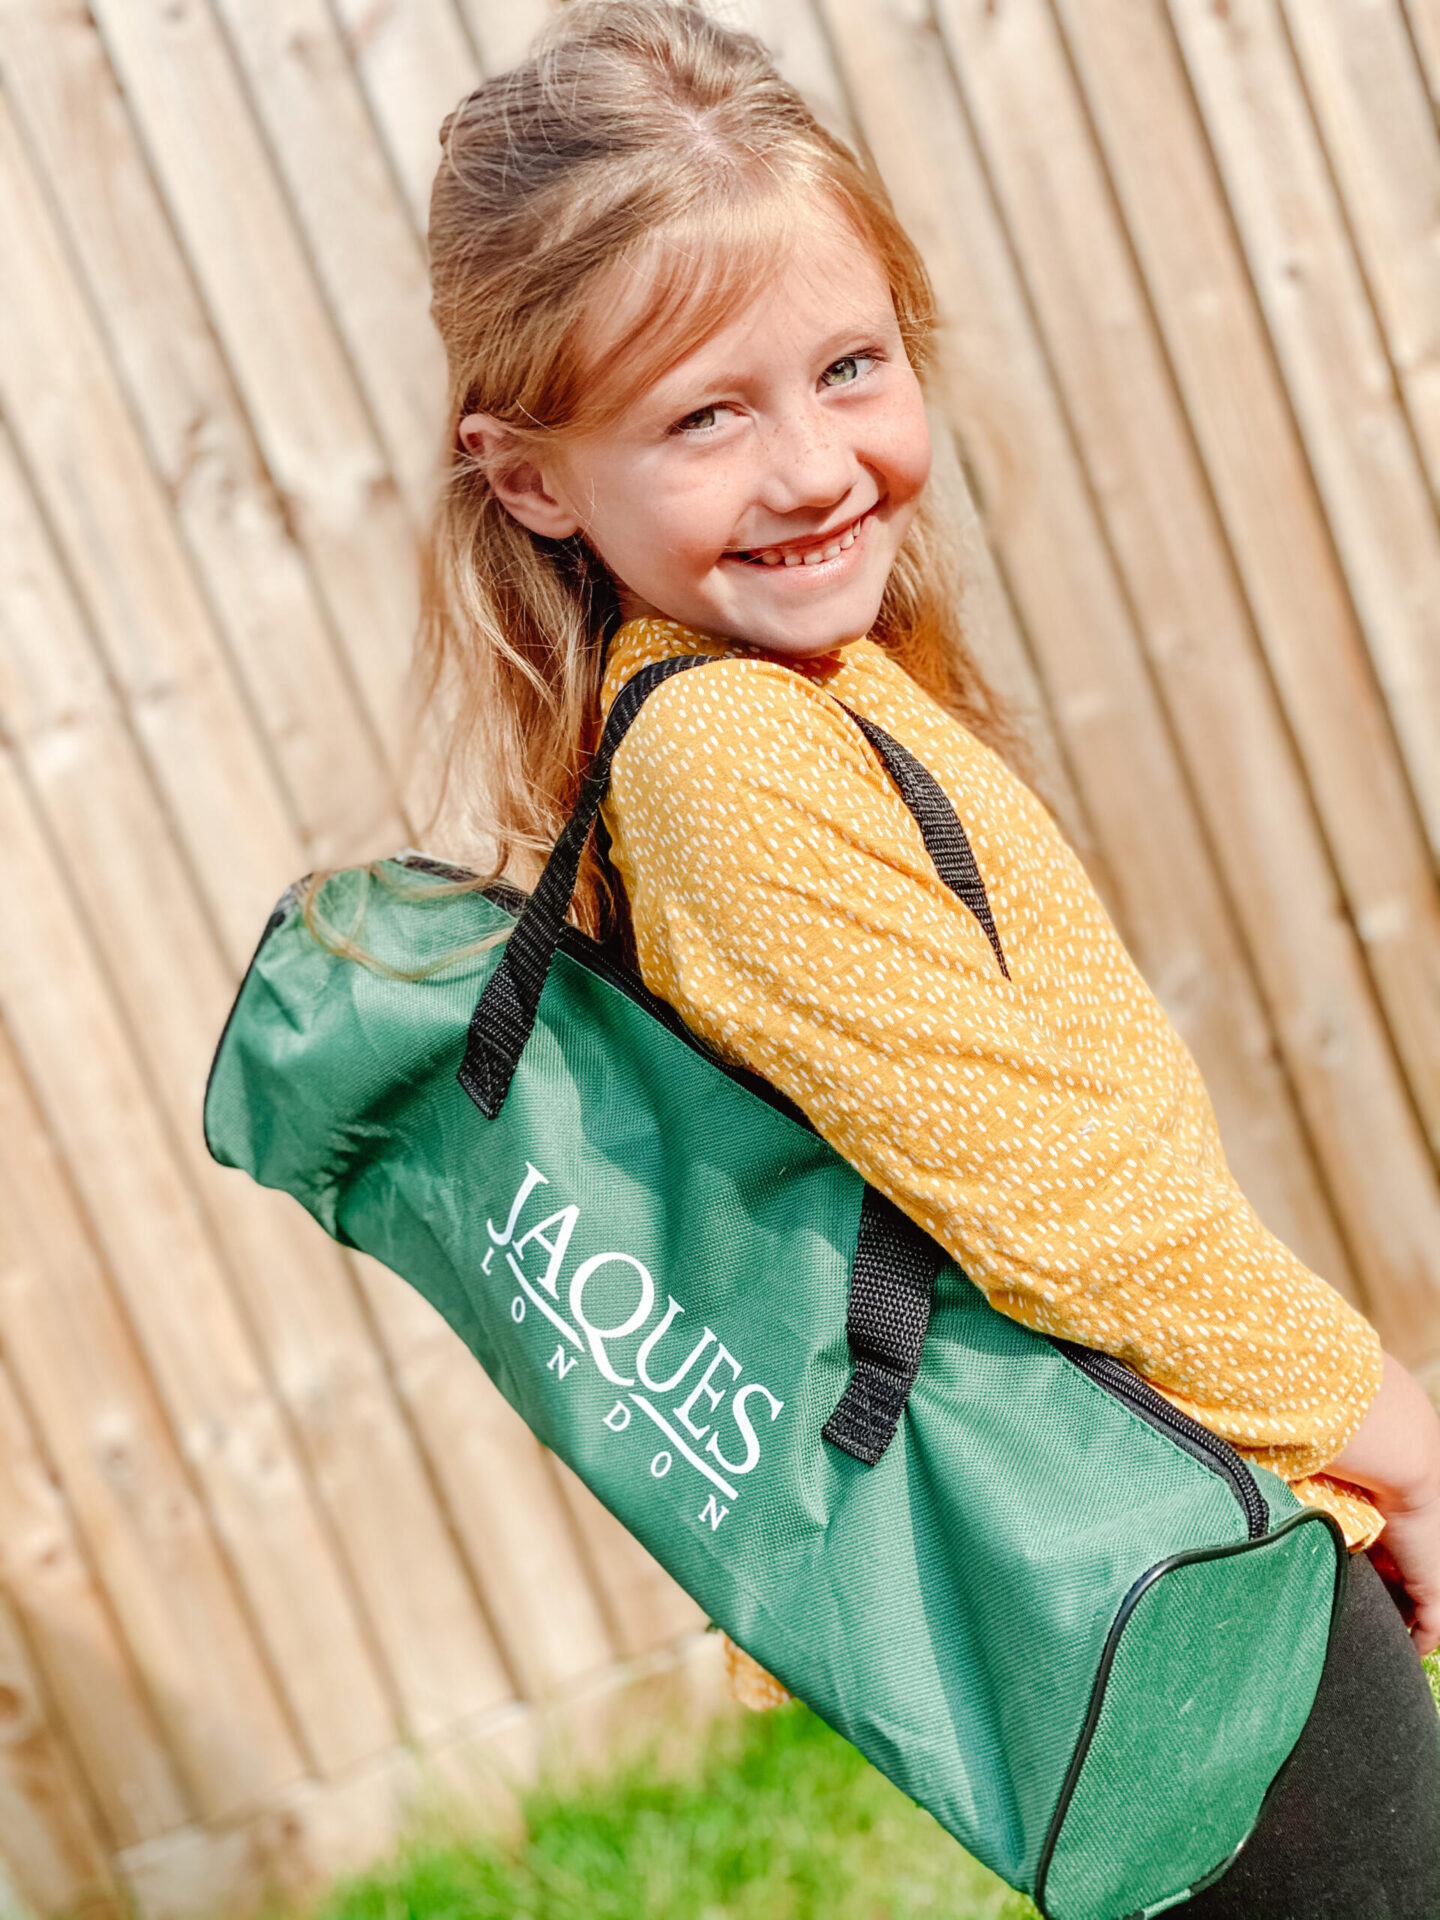 Summer is not over yet with Jaques of London outdoor games